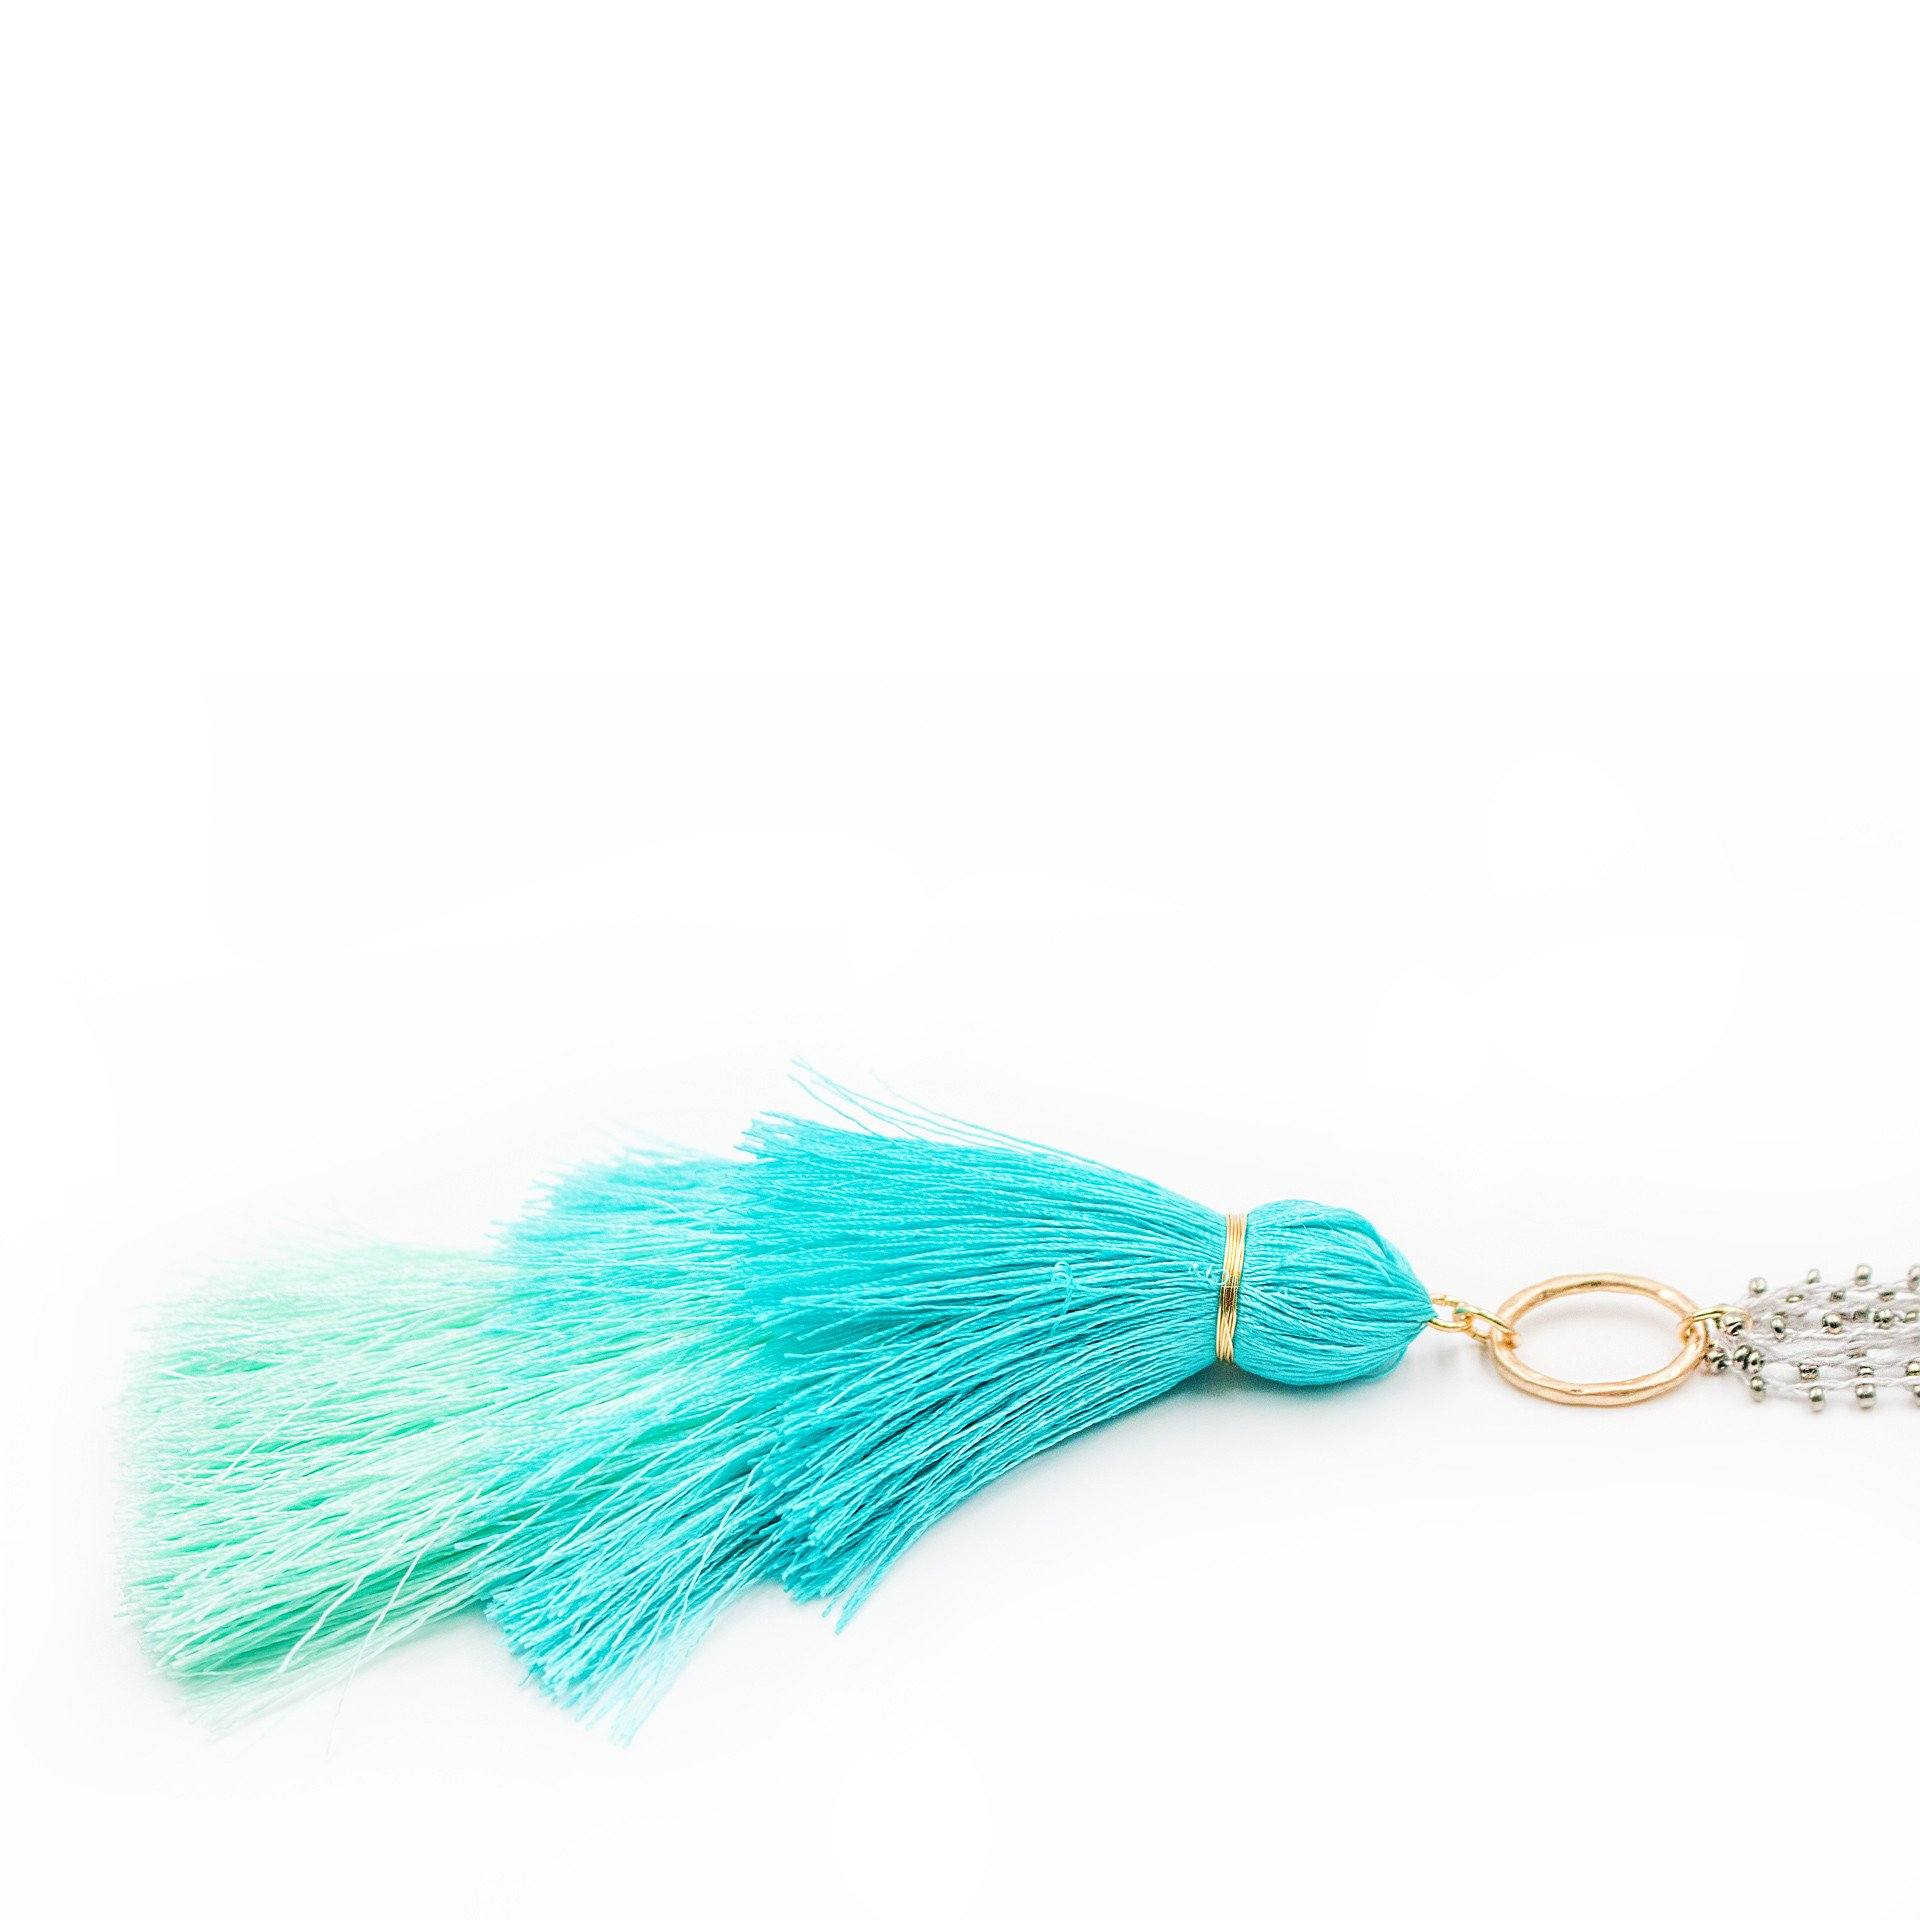 'Thalina' Tassel Necklace - Arlo and Arrows